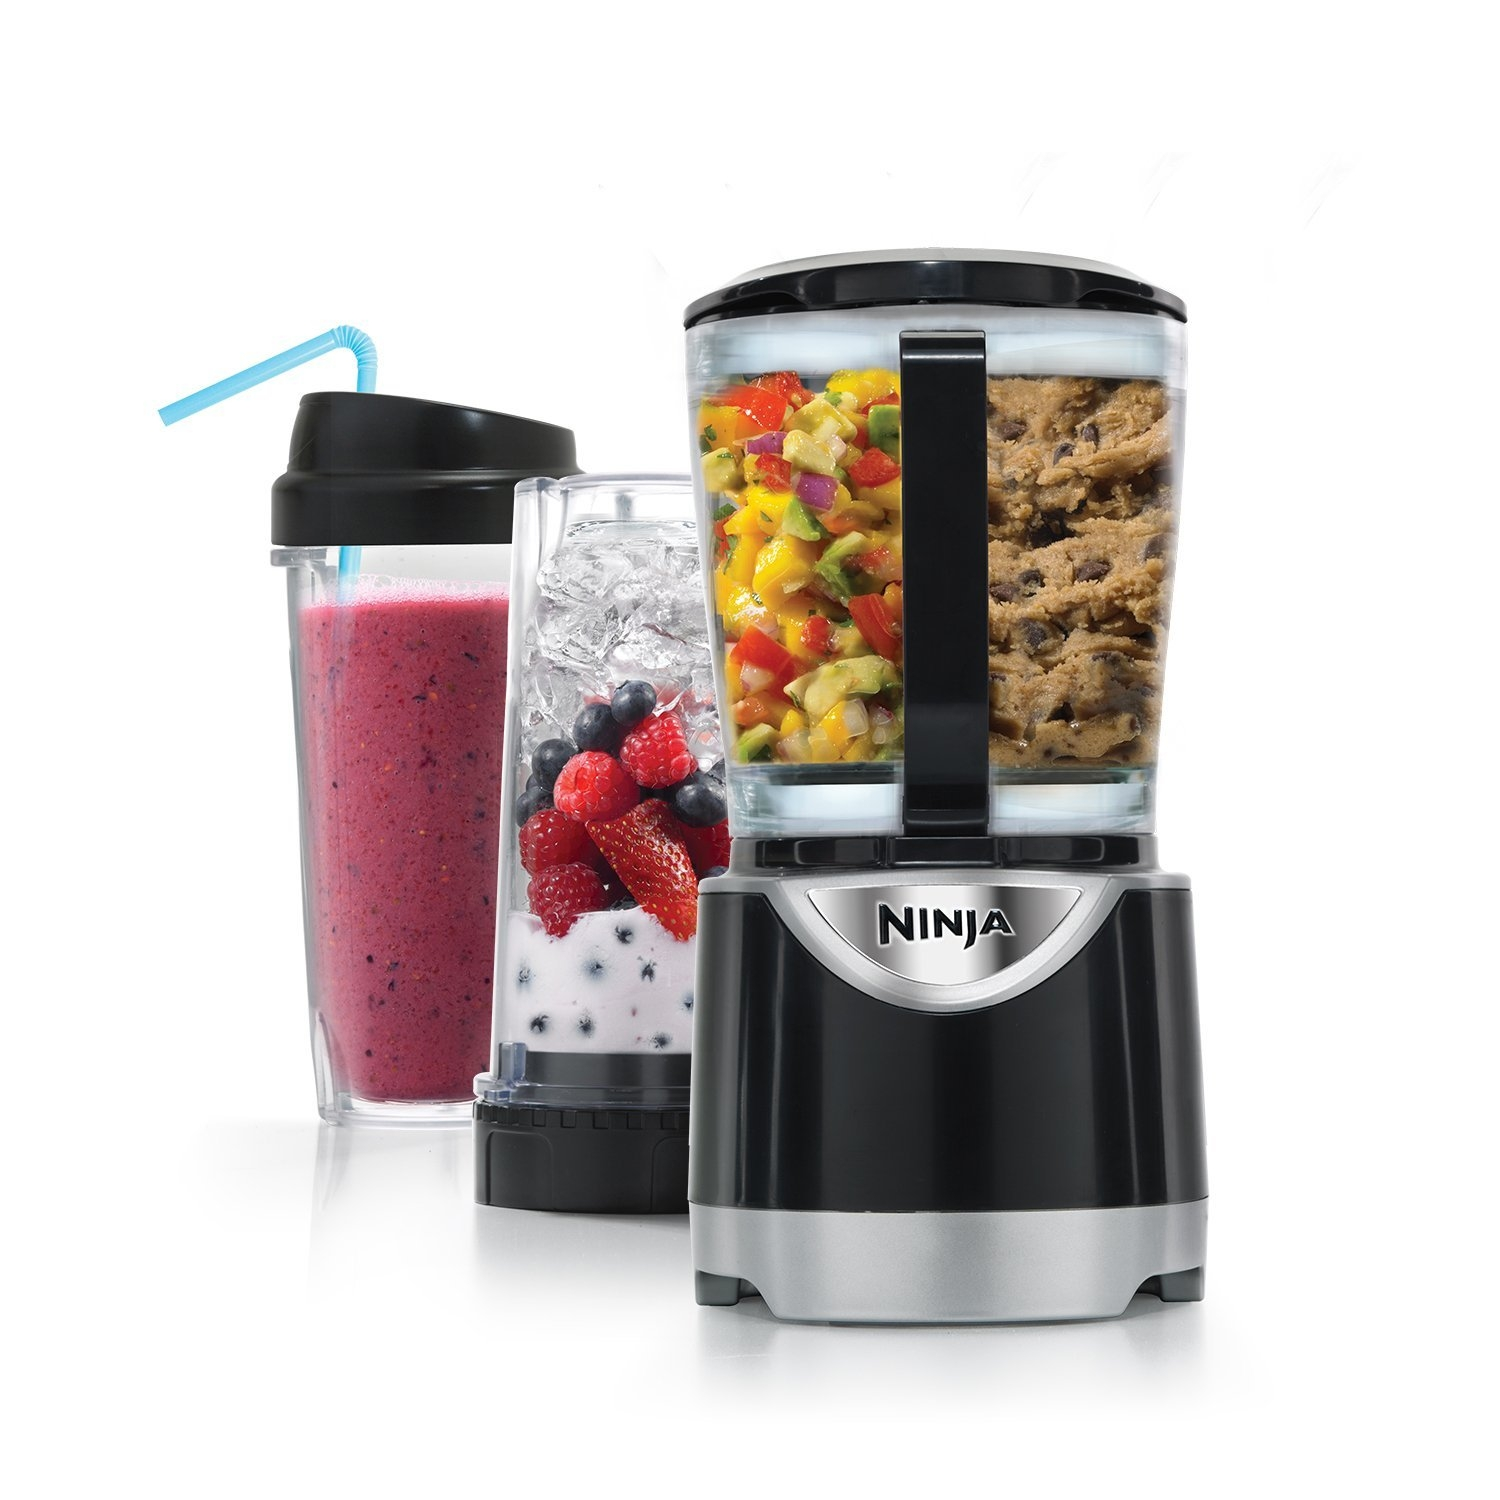 This 550 Watt Profession Power Kitchen Blender Food Processor gives you the power and convenience to live a healthy lifestyle by combining Ninja Total Crushing technology with Nutri Ninja cups, a processor bowl and easy-to-use attachments for all your kitchen needs. With 550 watts of power, Pulse Technology provides consistent evenly processed & blended ingredients every time. Crush ice into snow, blend delicious drinks, process fresh ingredients evenly, juice whole fruits and vegetables, and knead dough! Total Crushing Technology delivers unbeatable professional power with blades that pulverize and crush through ice, whole fruits and vegetables in seconds. Blast ice into snow in seconds and blend your favorite ingredients into delicious sauces, dips and smoothies!